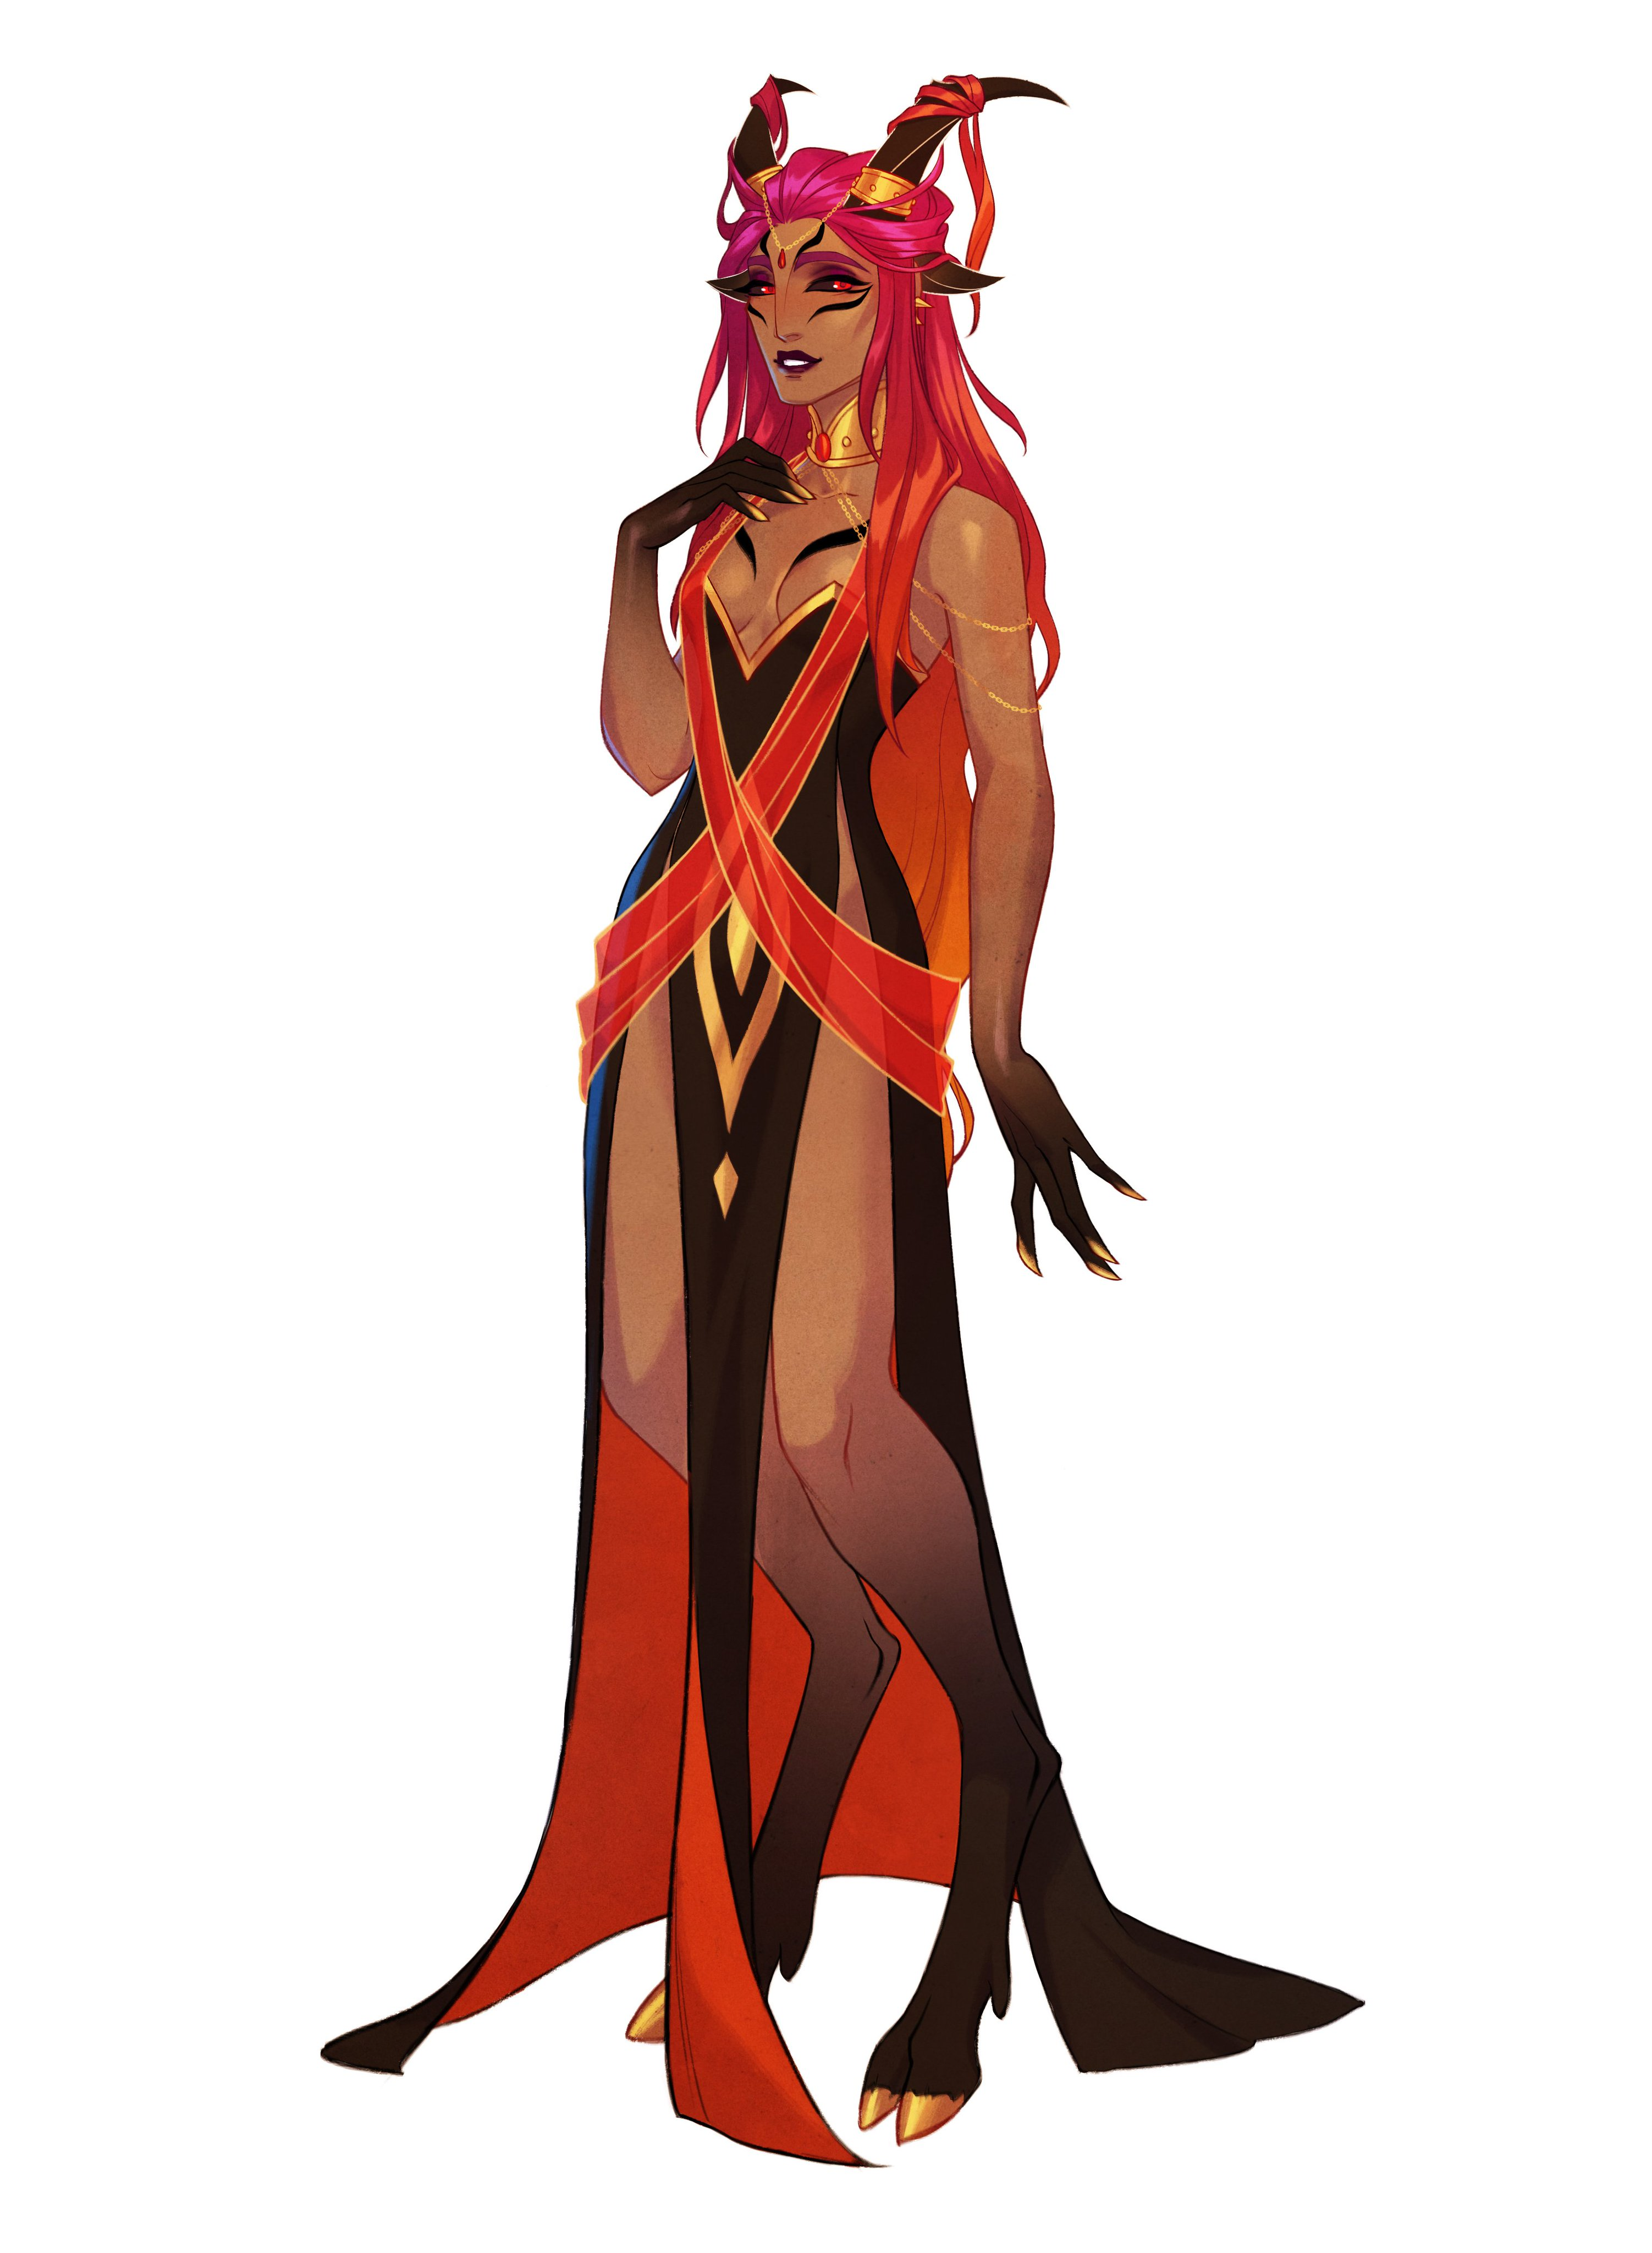 https://vignette.wikia.nocookie.net/thearcanagame/images/f/f2/Devil_nadia_full.jpeg/revision/latest?cb=20190406002555